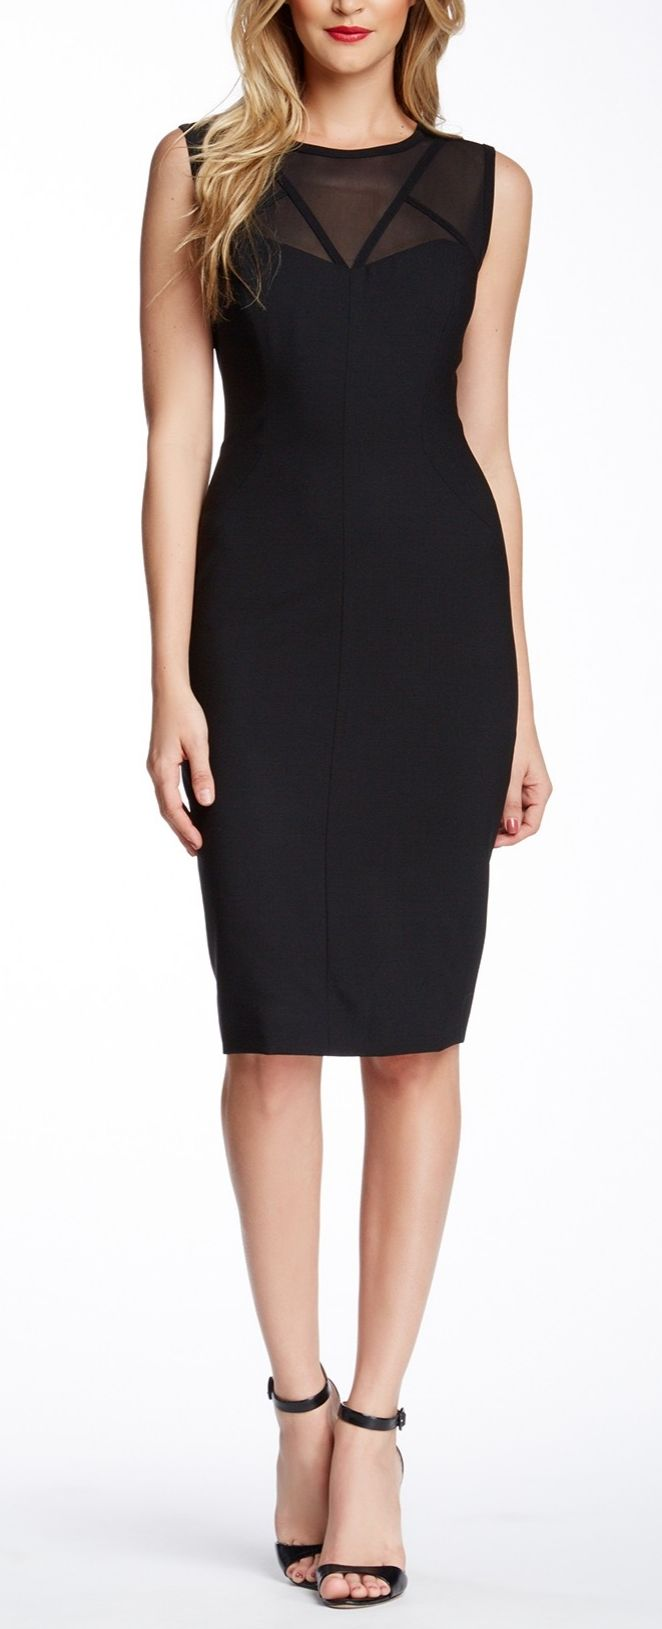 The perfect LBD - timeless